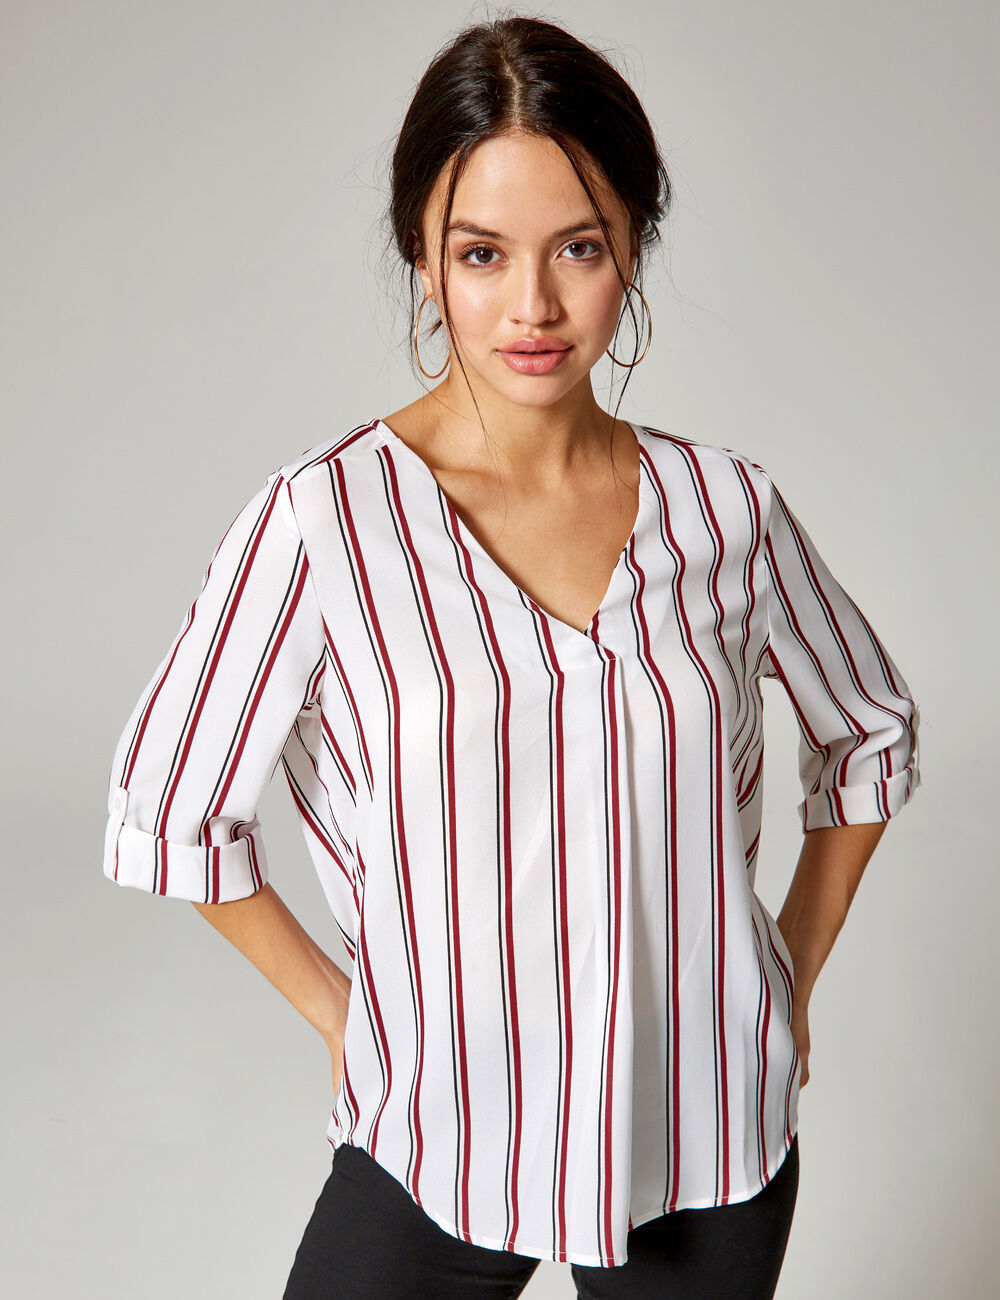 c76d56a2d6d Sherosa Women Red and White Striped Shirts V Neck Blouses Ladies Tops(S  Wine Red